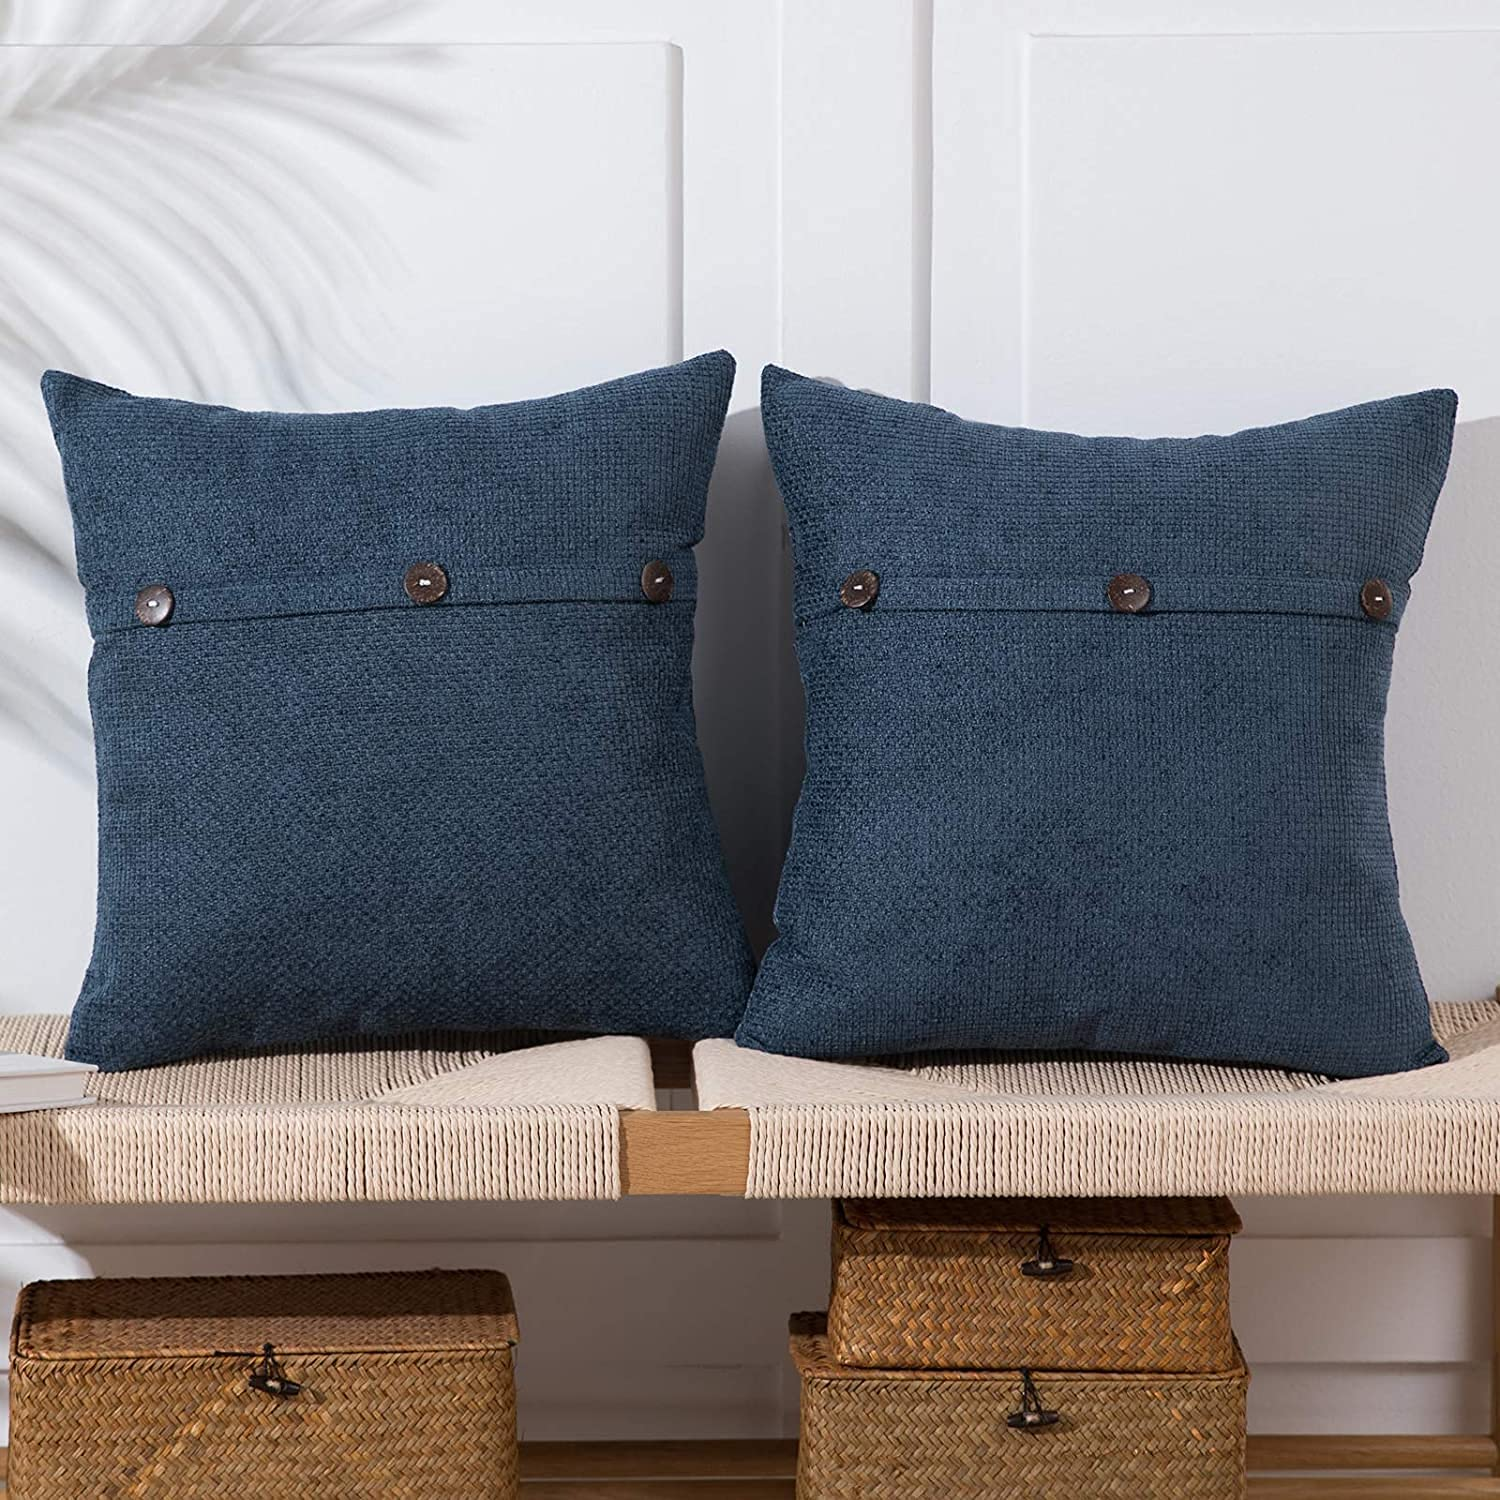 Anickal Gray Blue Pillow Covers 18x18 National products Triple Buttons Great interest with Inch S